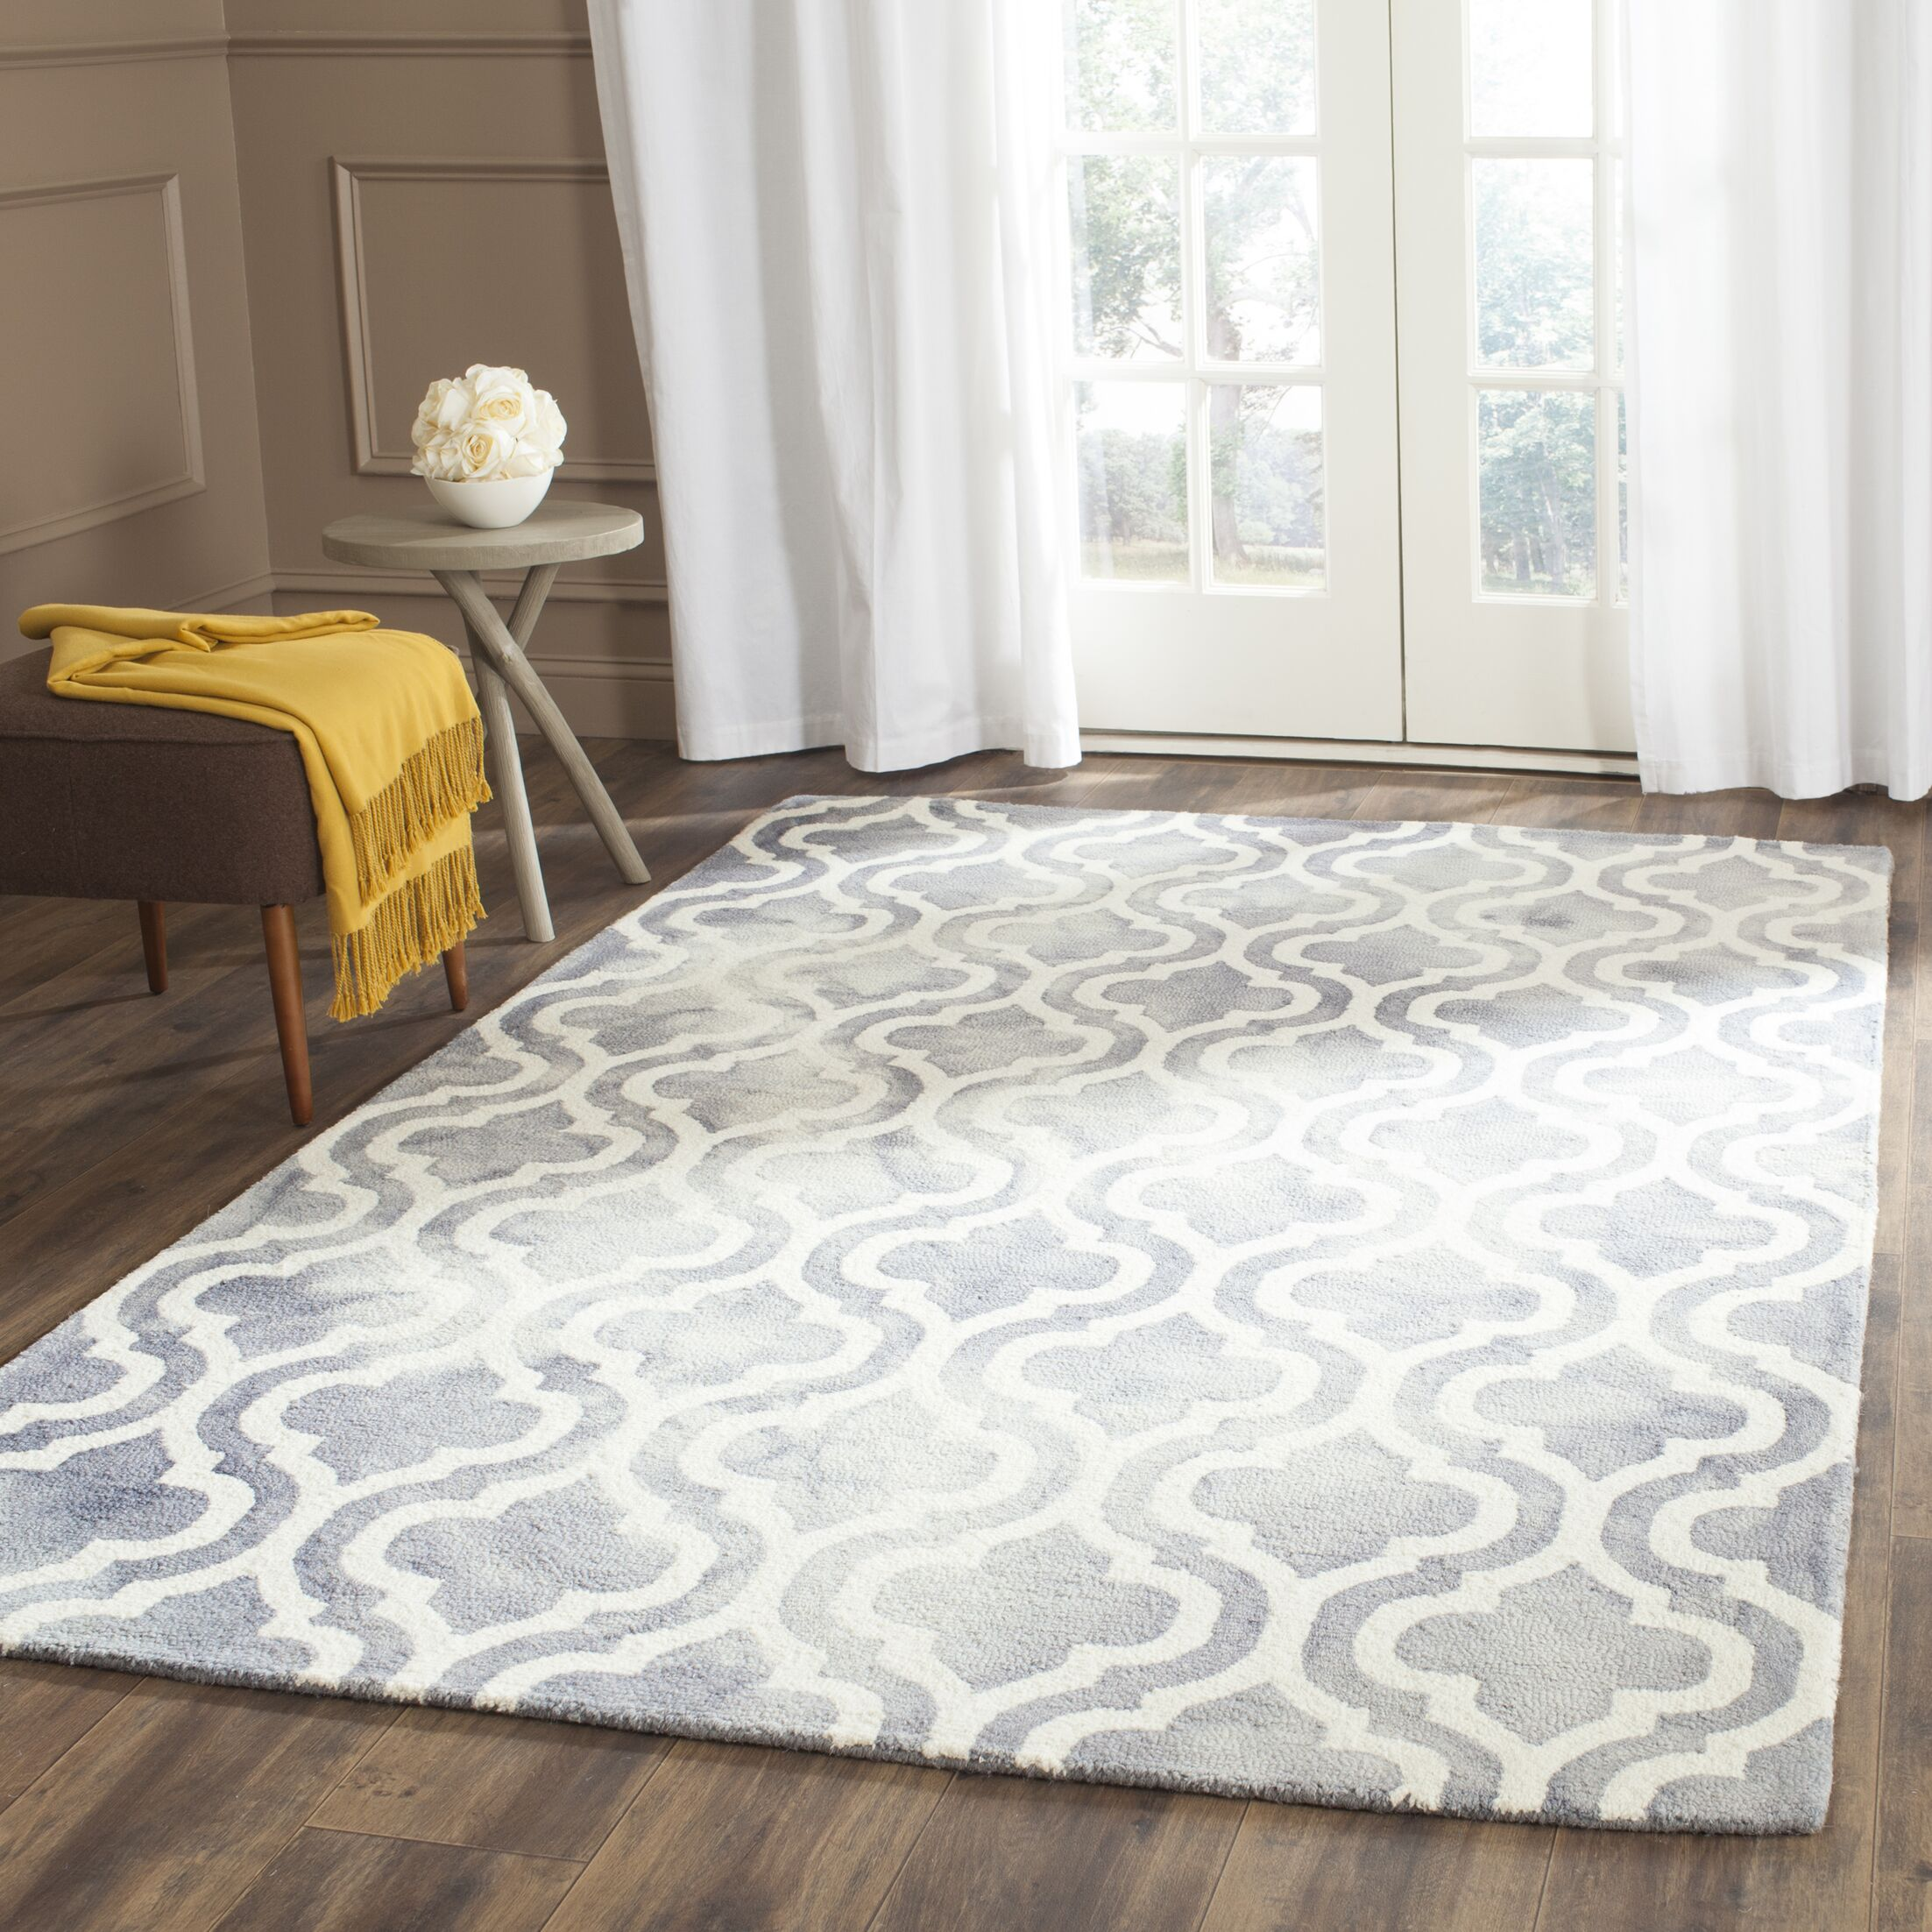 Bettina Hand-Tufted Gray/Ivory Area Rug Rug Size: Runner 2'3